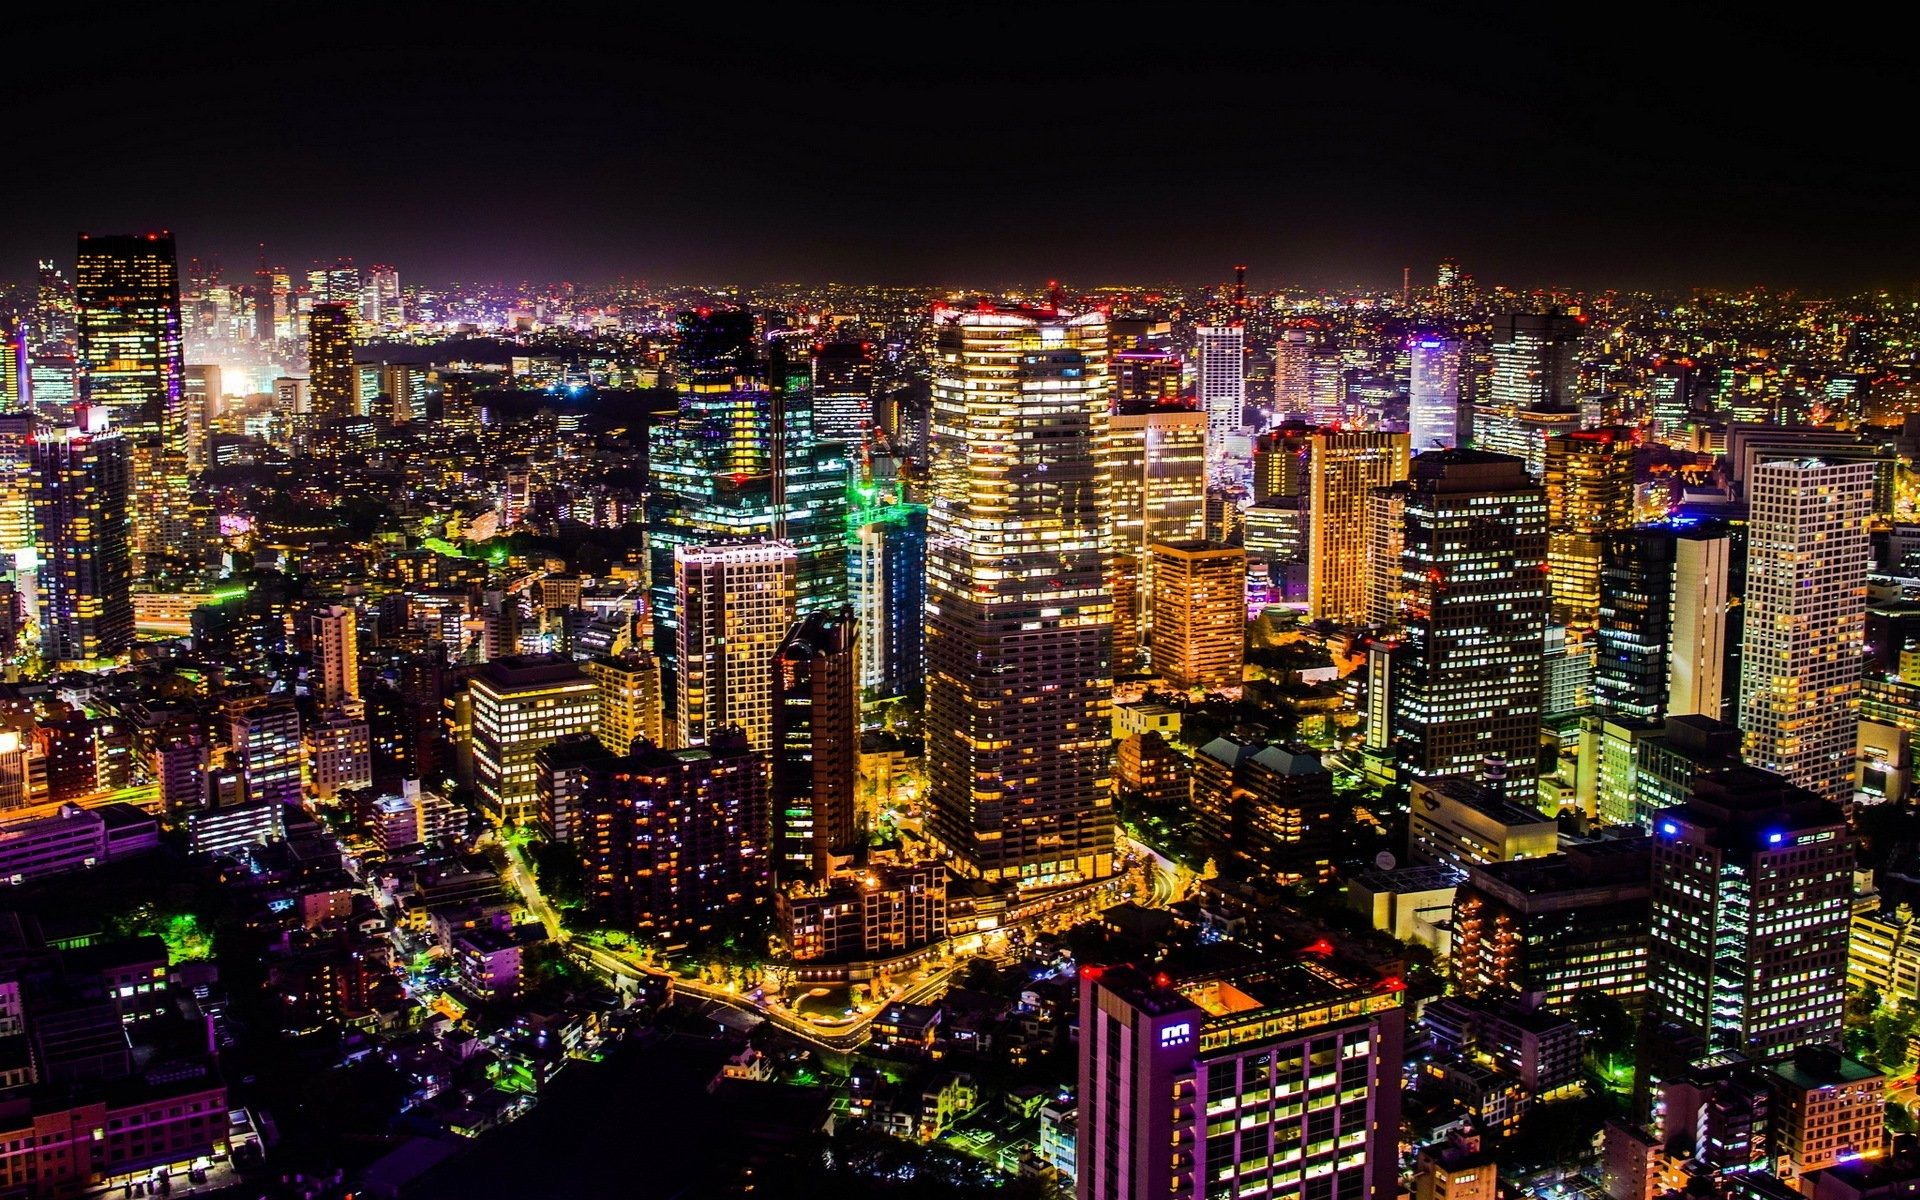 Tokyo wallpaper Download free awesome High Resolution